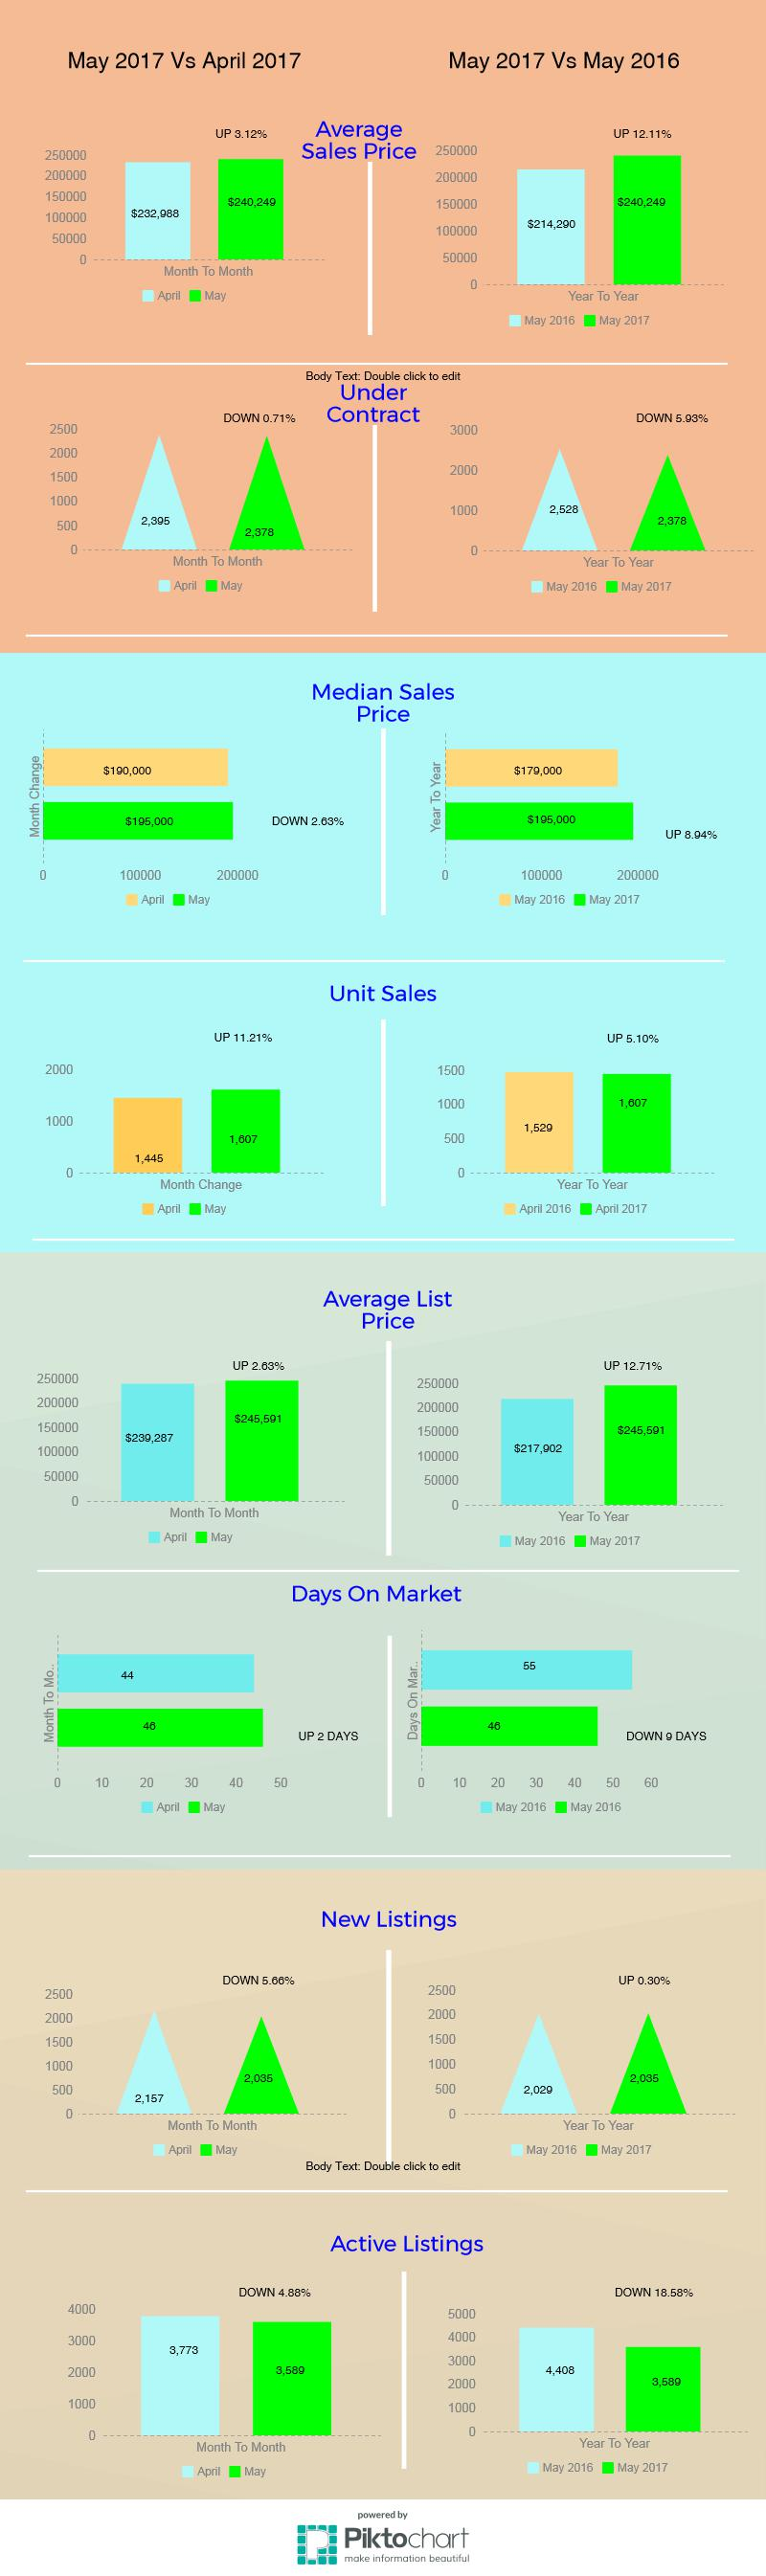 Tucson Housing Market May 2017